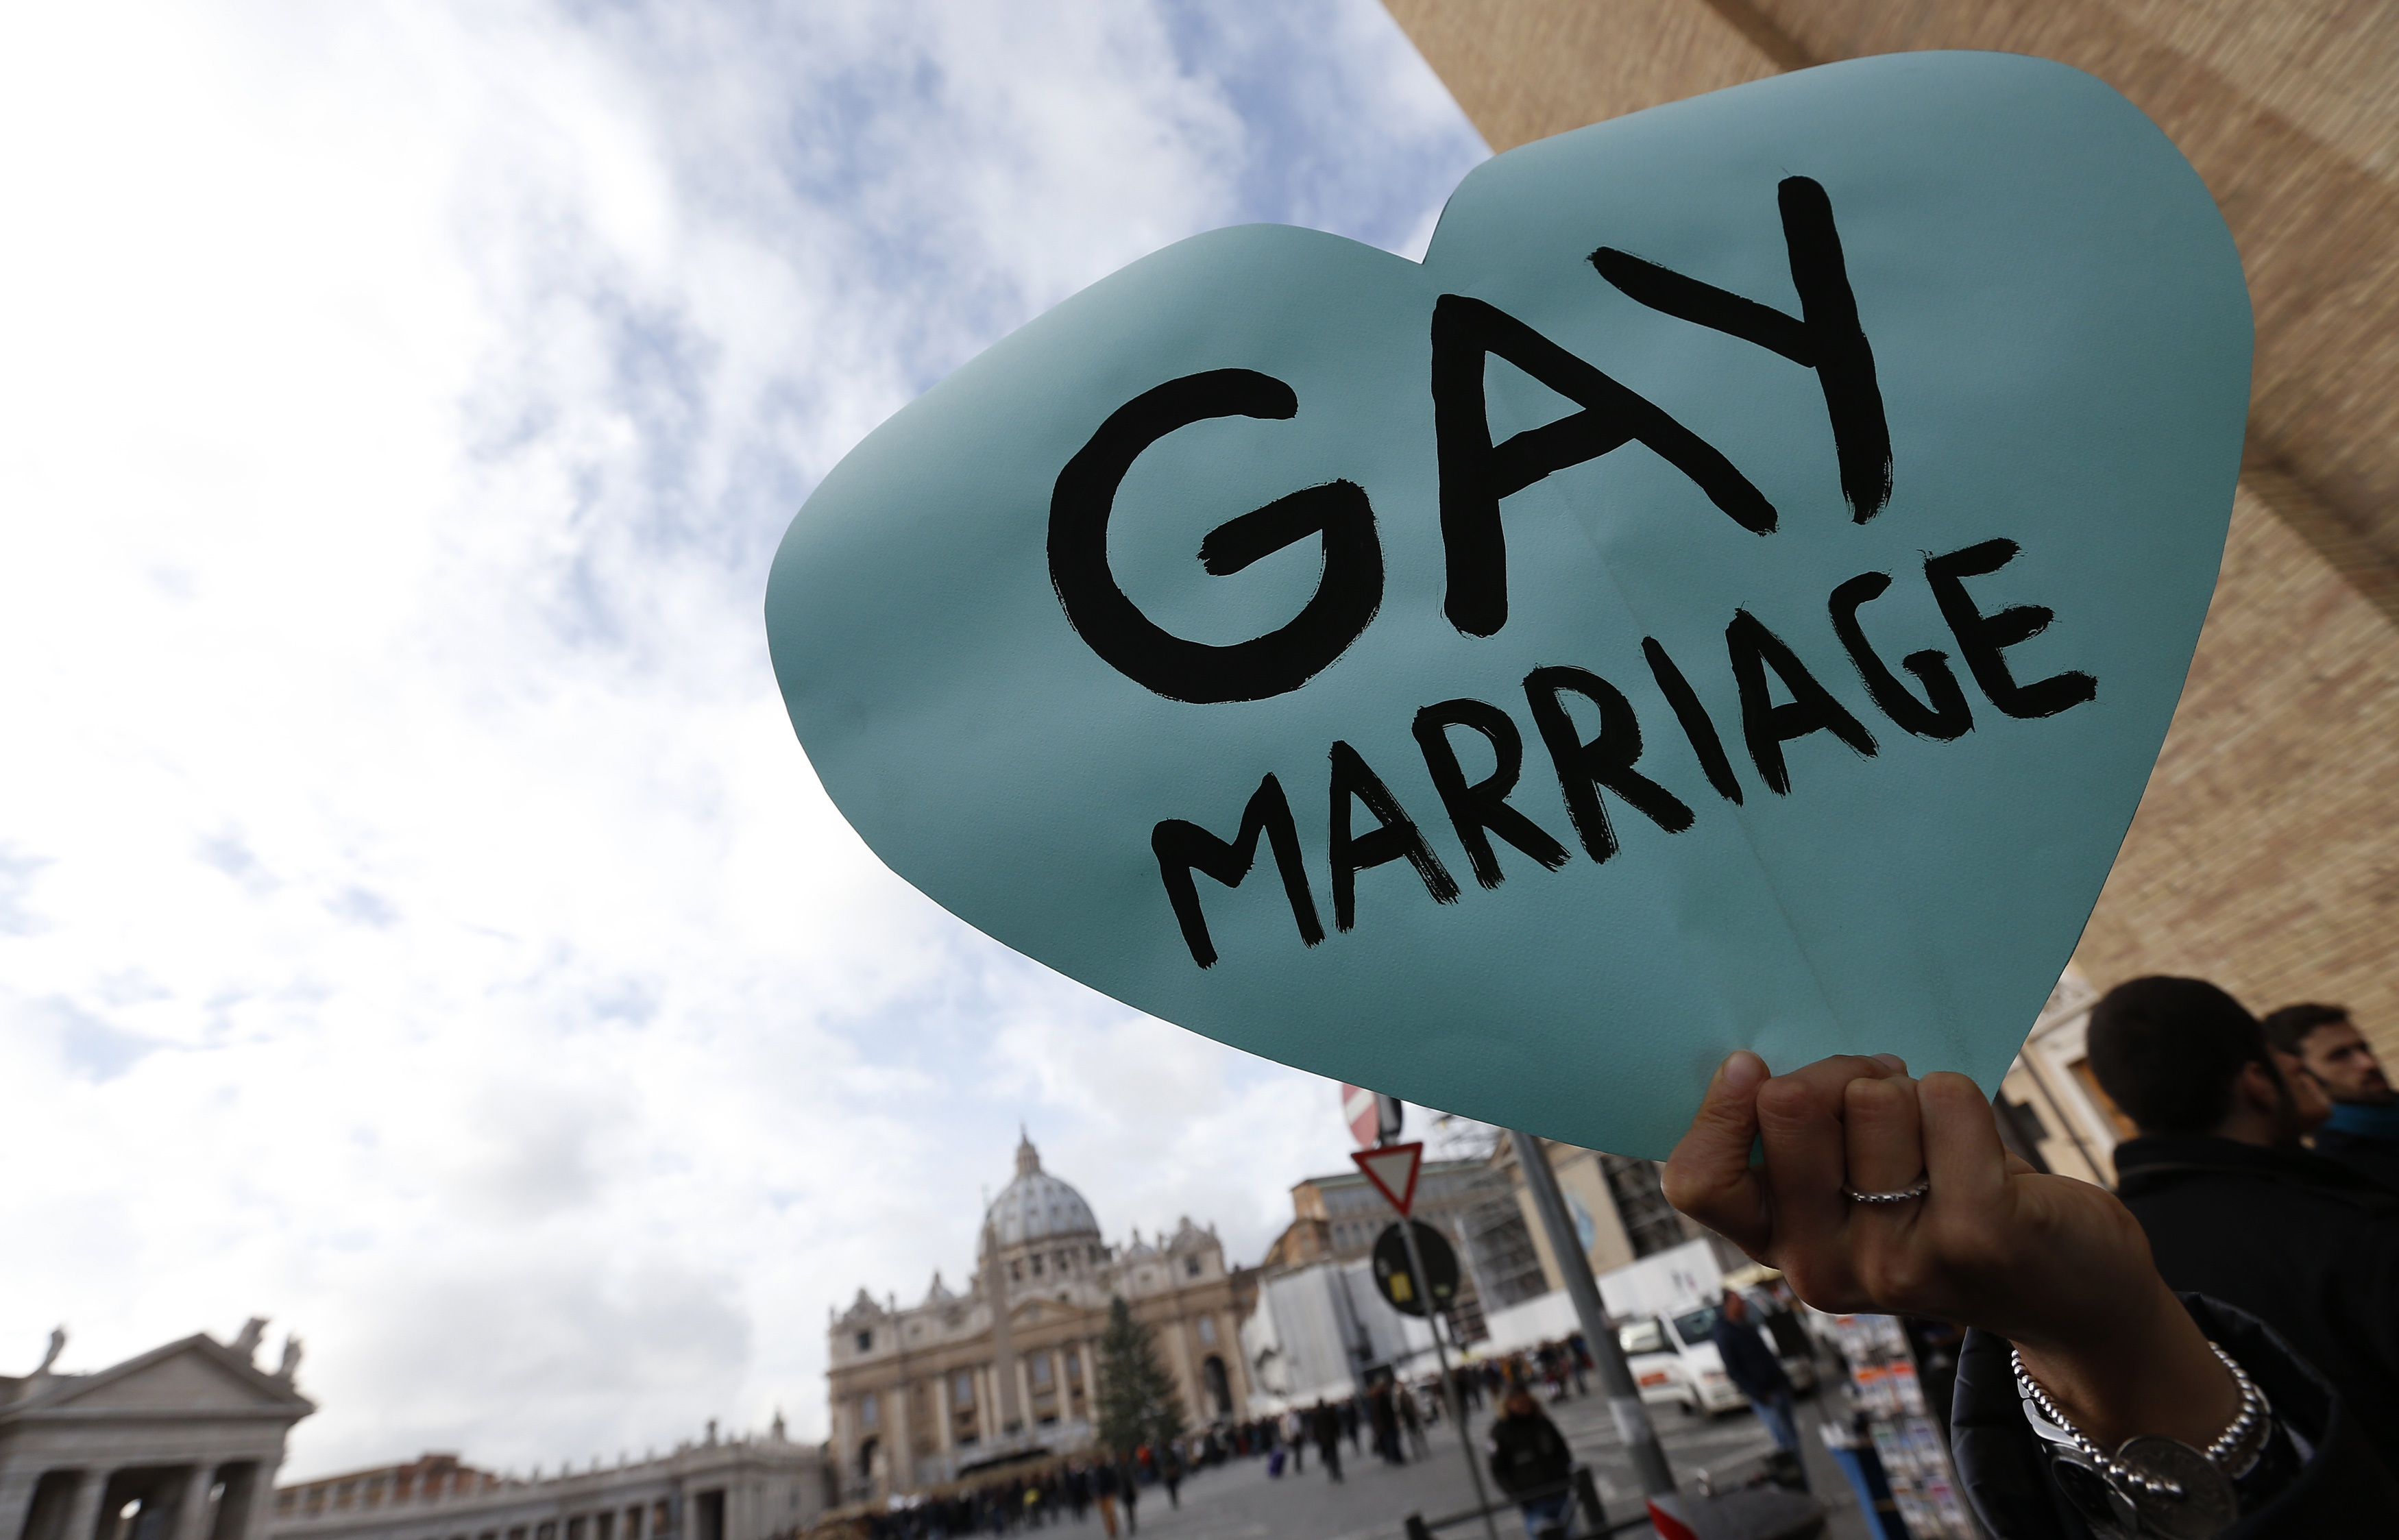 The supreme court rules that gay marriage is a constitutional right in the united states